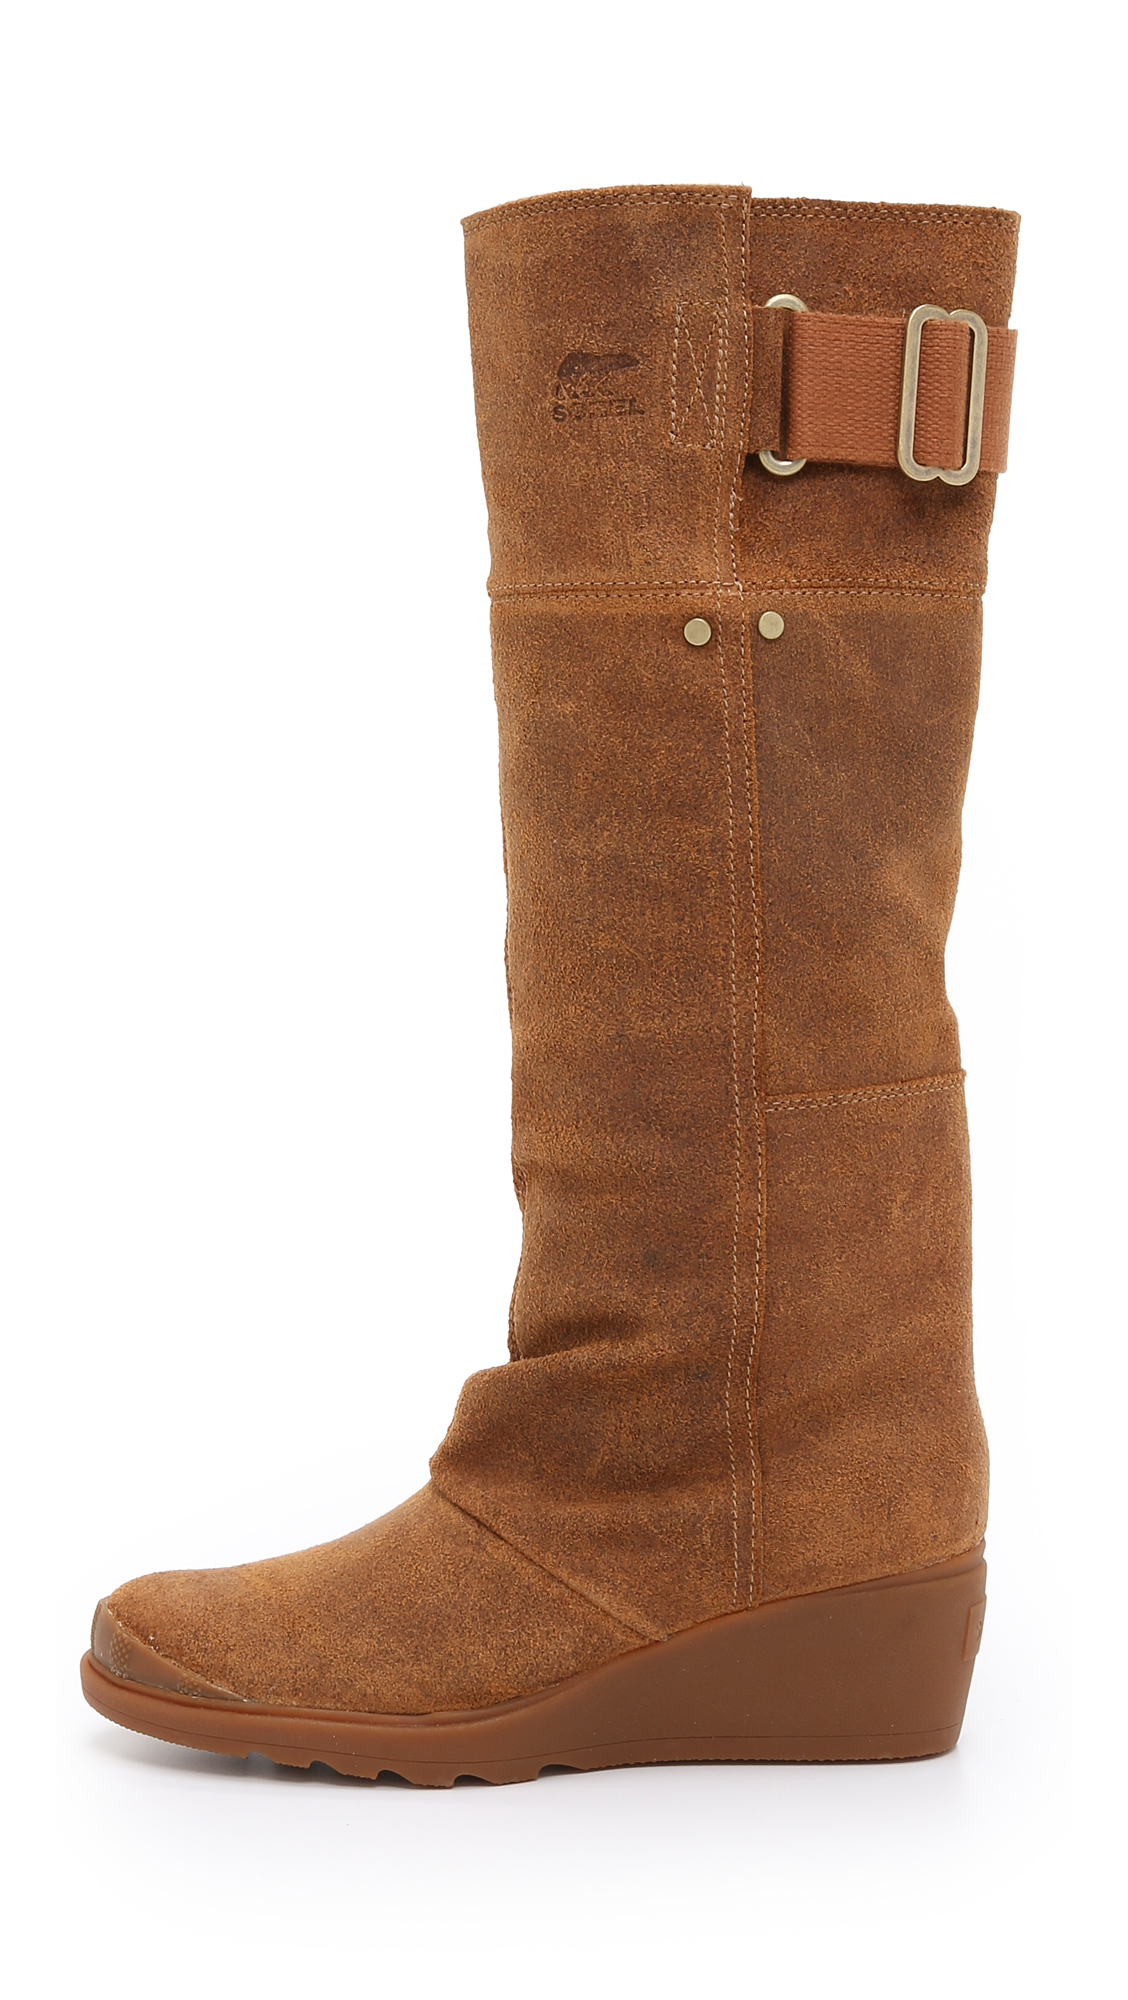 Sorel Toronto Tall Boots In Brown Lyst